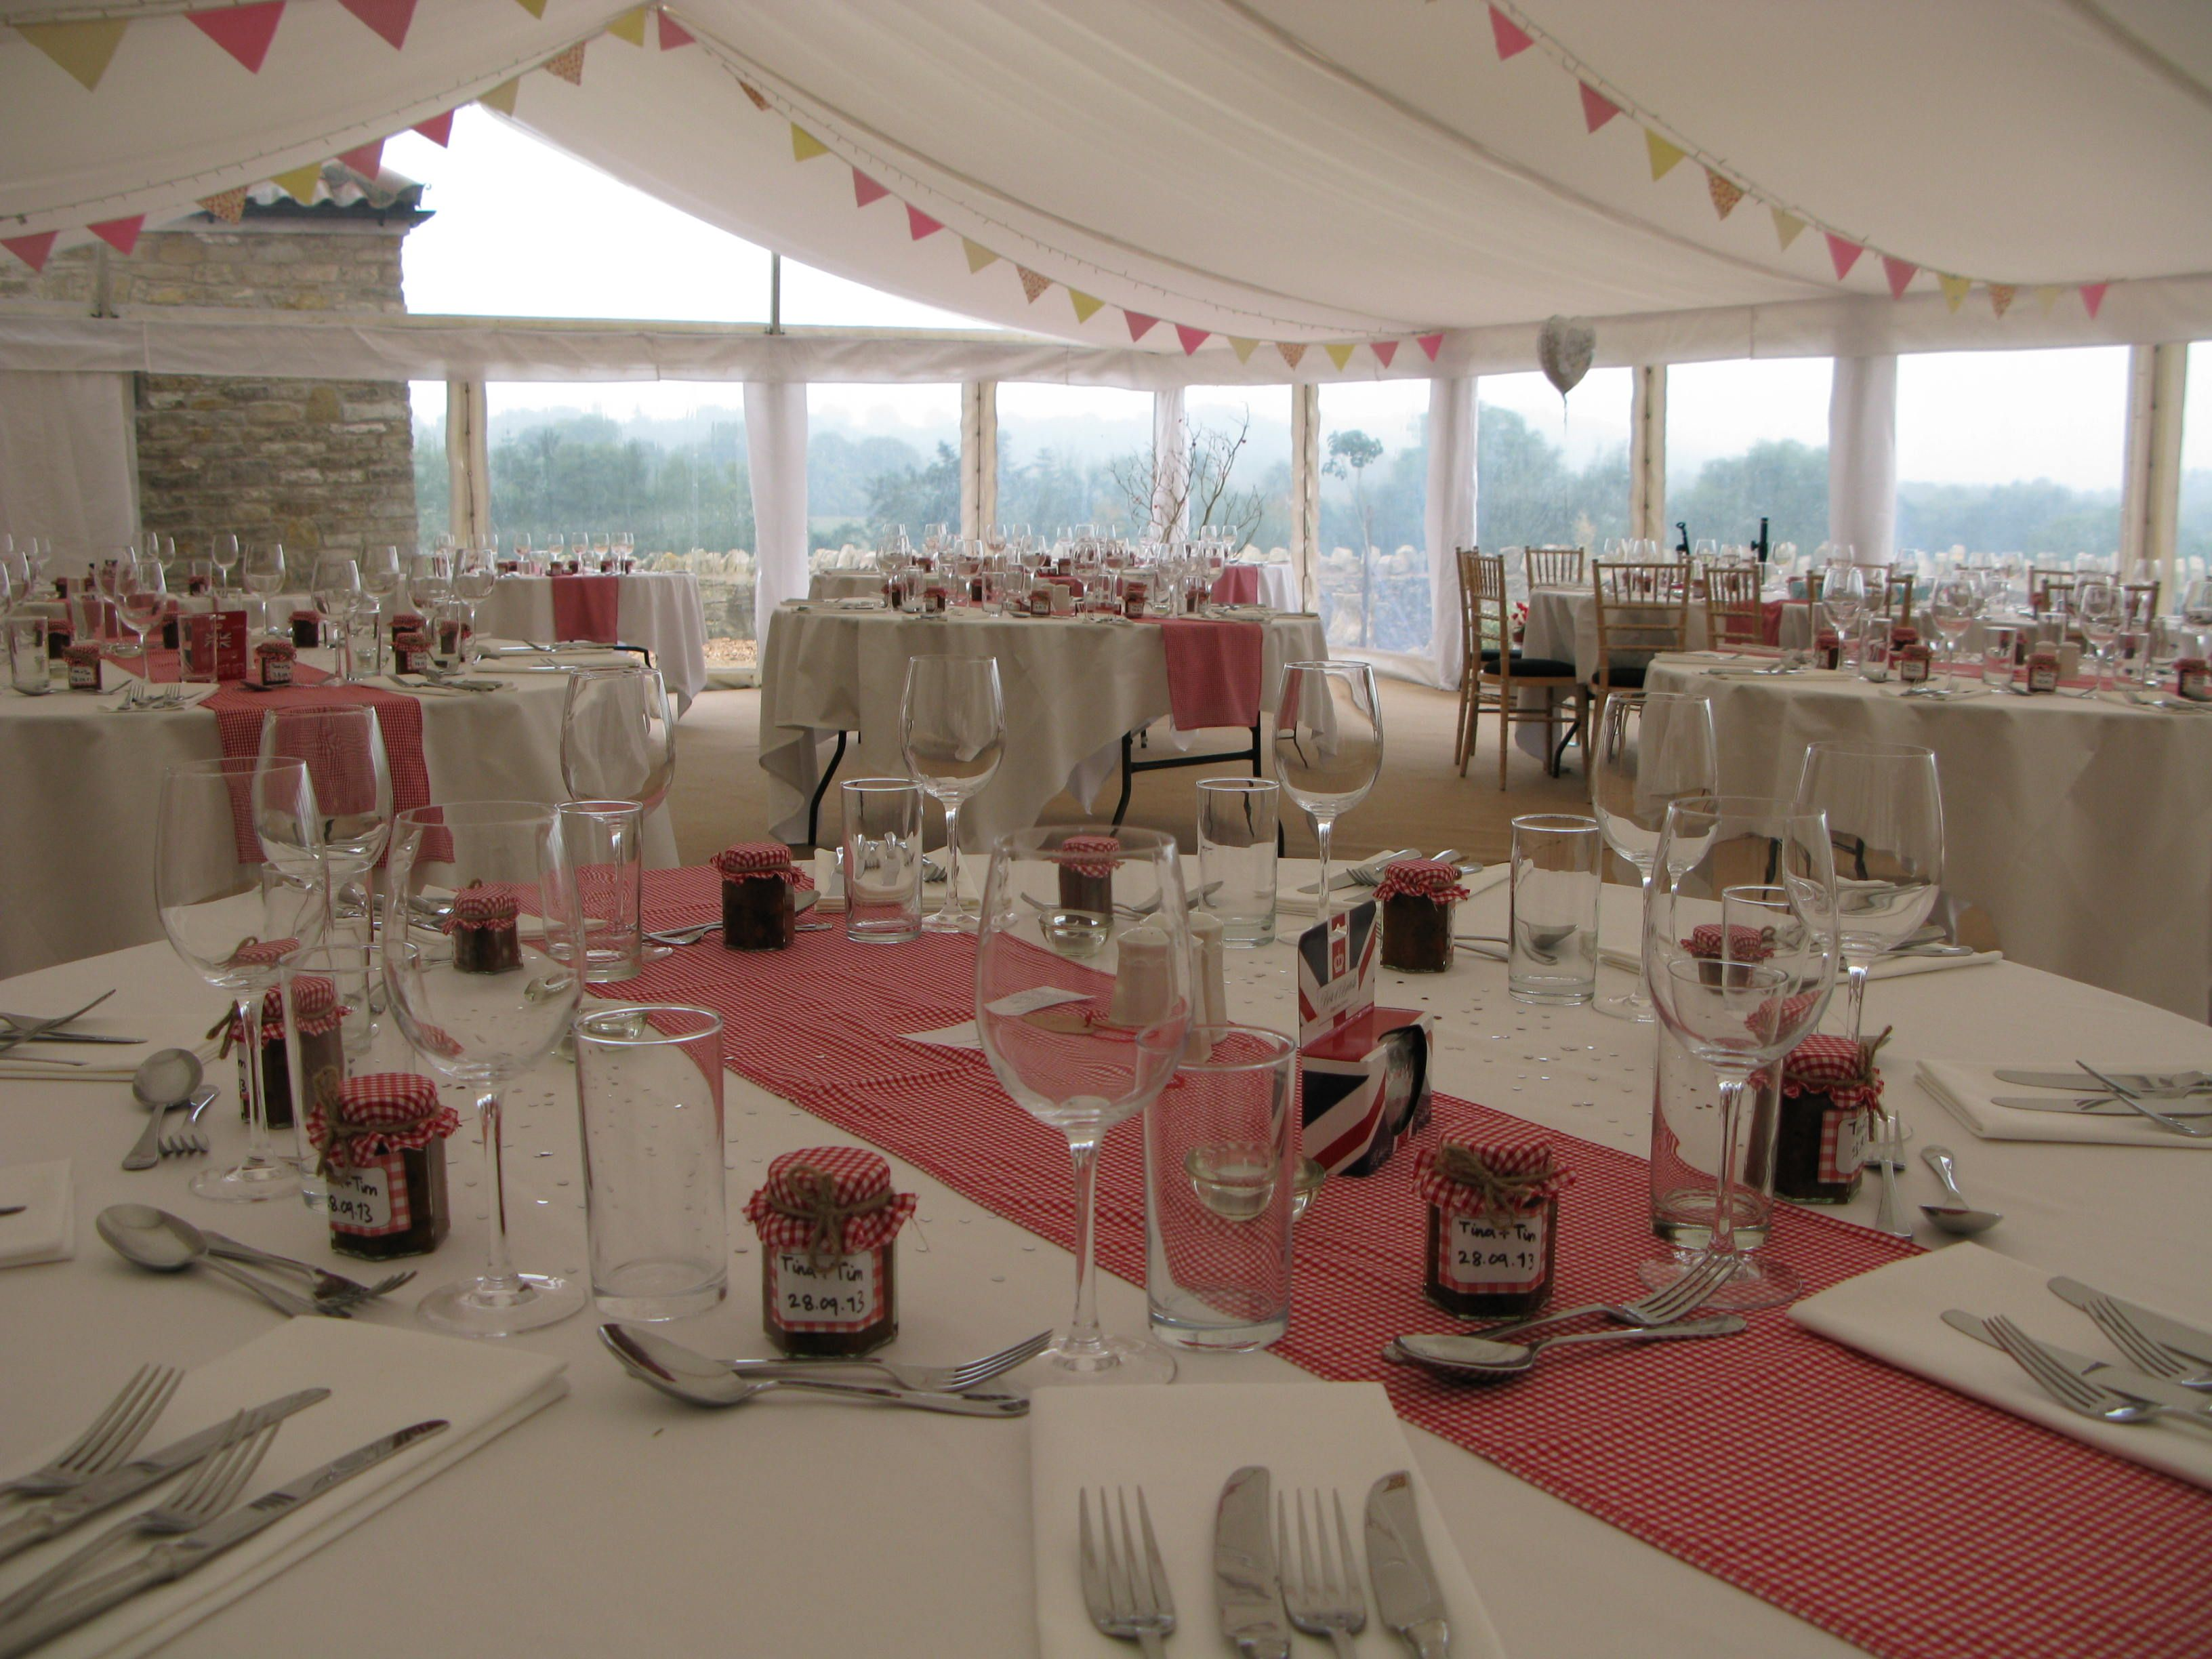 Charmant This Red And White Scandinavian Themed Wedding Used Red Gingham Table  Runners To Break Up The Plainness Of The Marquee. | Pinterest | Red Gingham,  Wedding ...